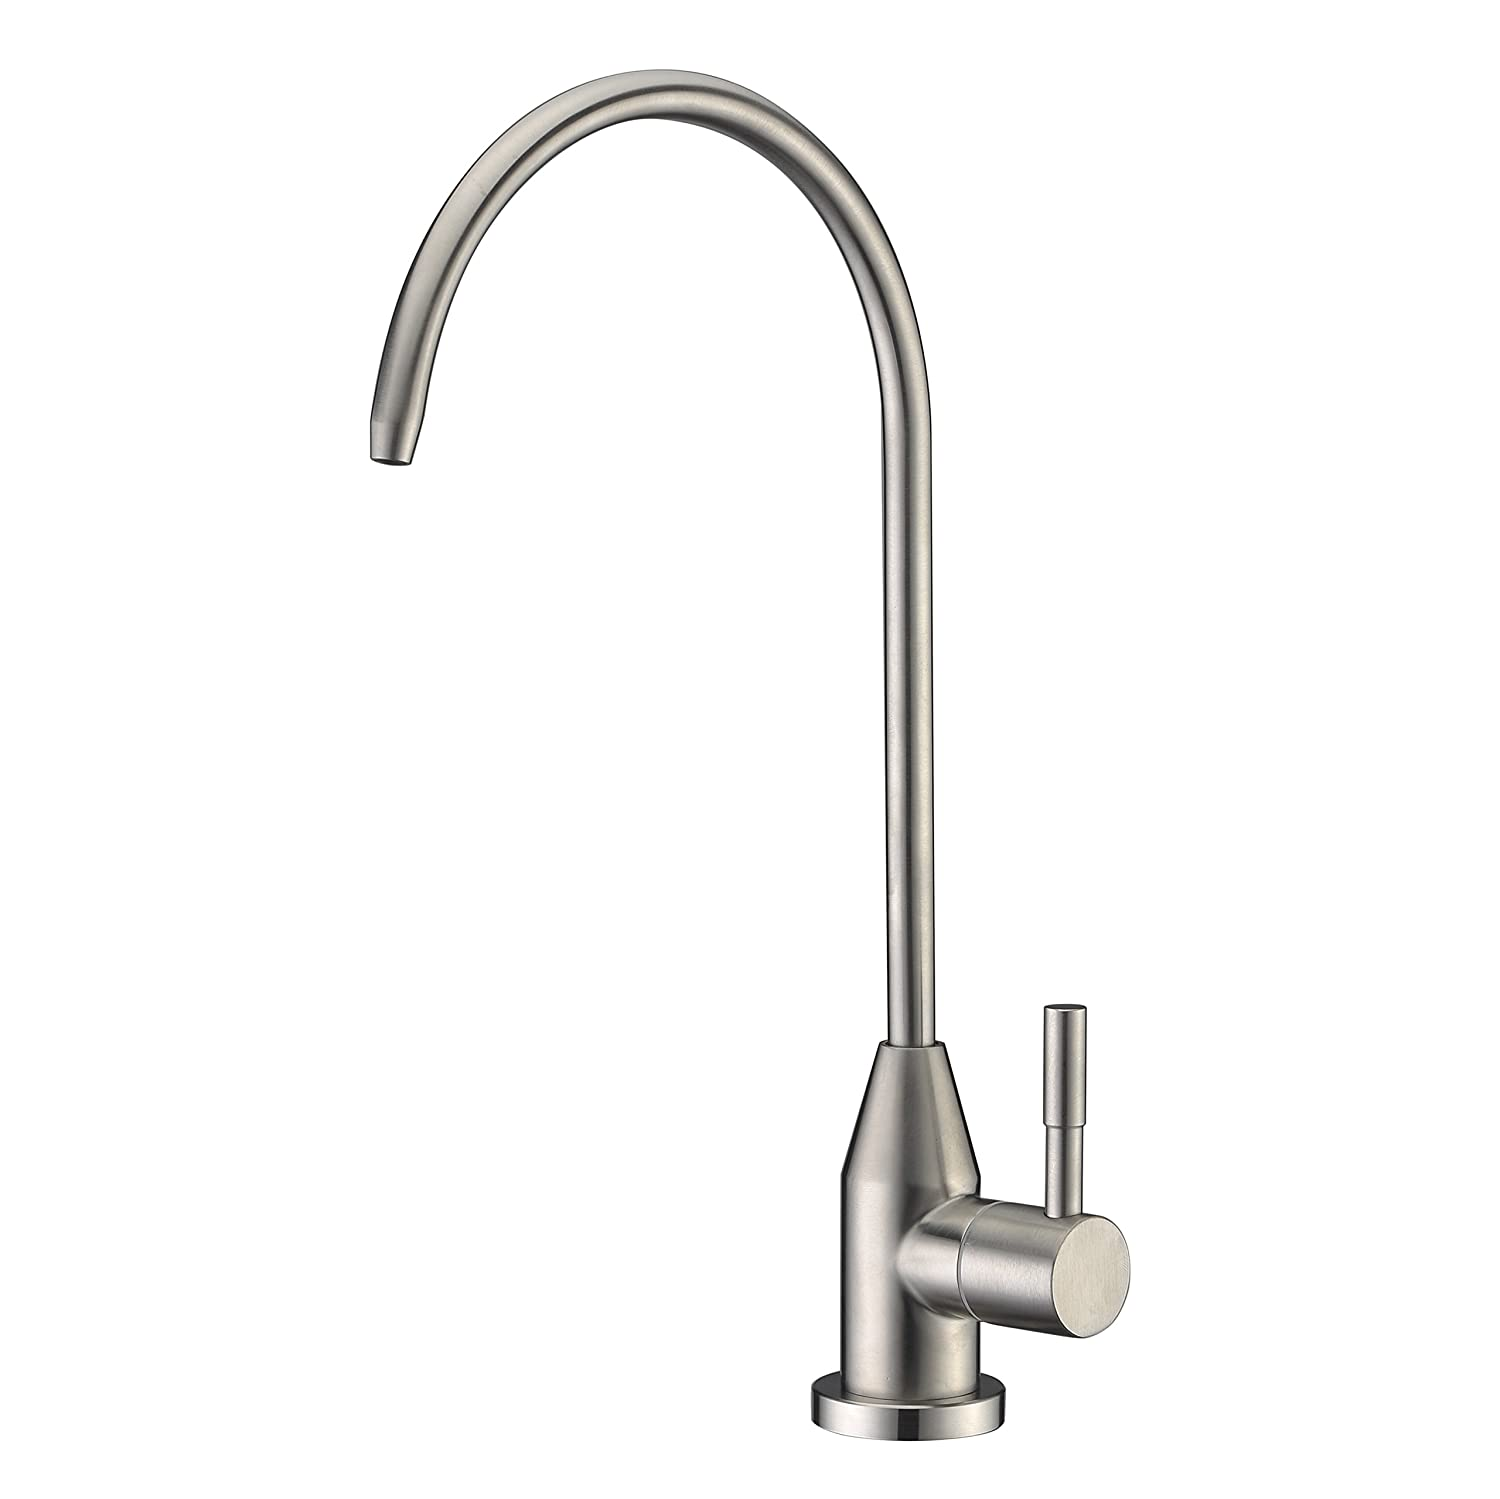 Modern Best Stainless Steel Brushed Nickel Kitchen Bar Sink Drinking Water Purifier Faucet, Commercial Water Filtration Faucet for Under Sink Water Filter System